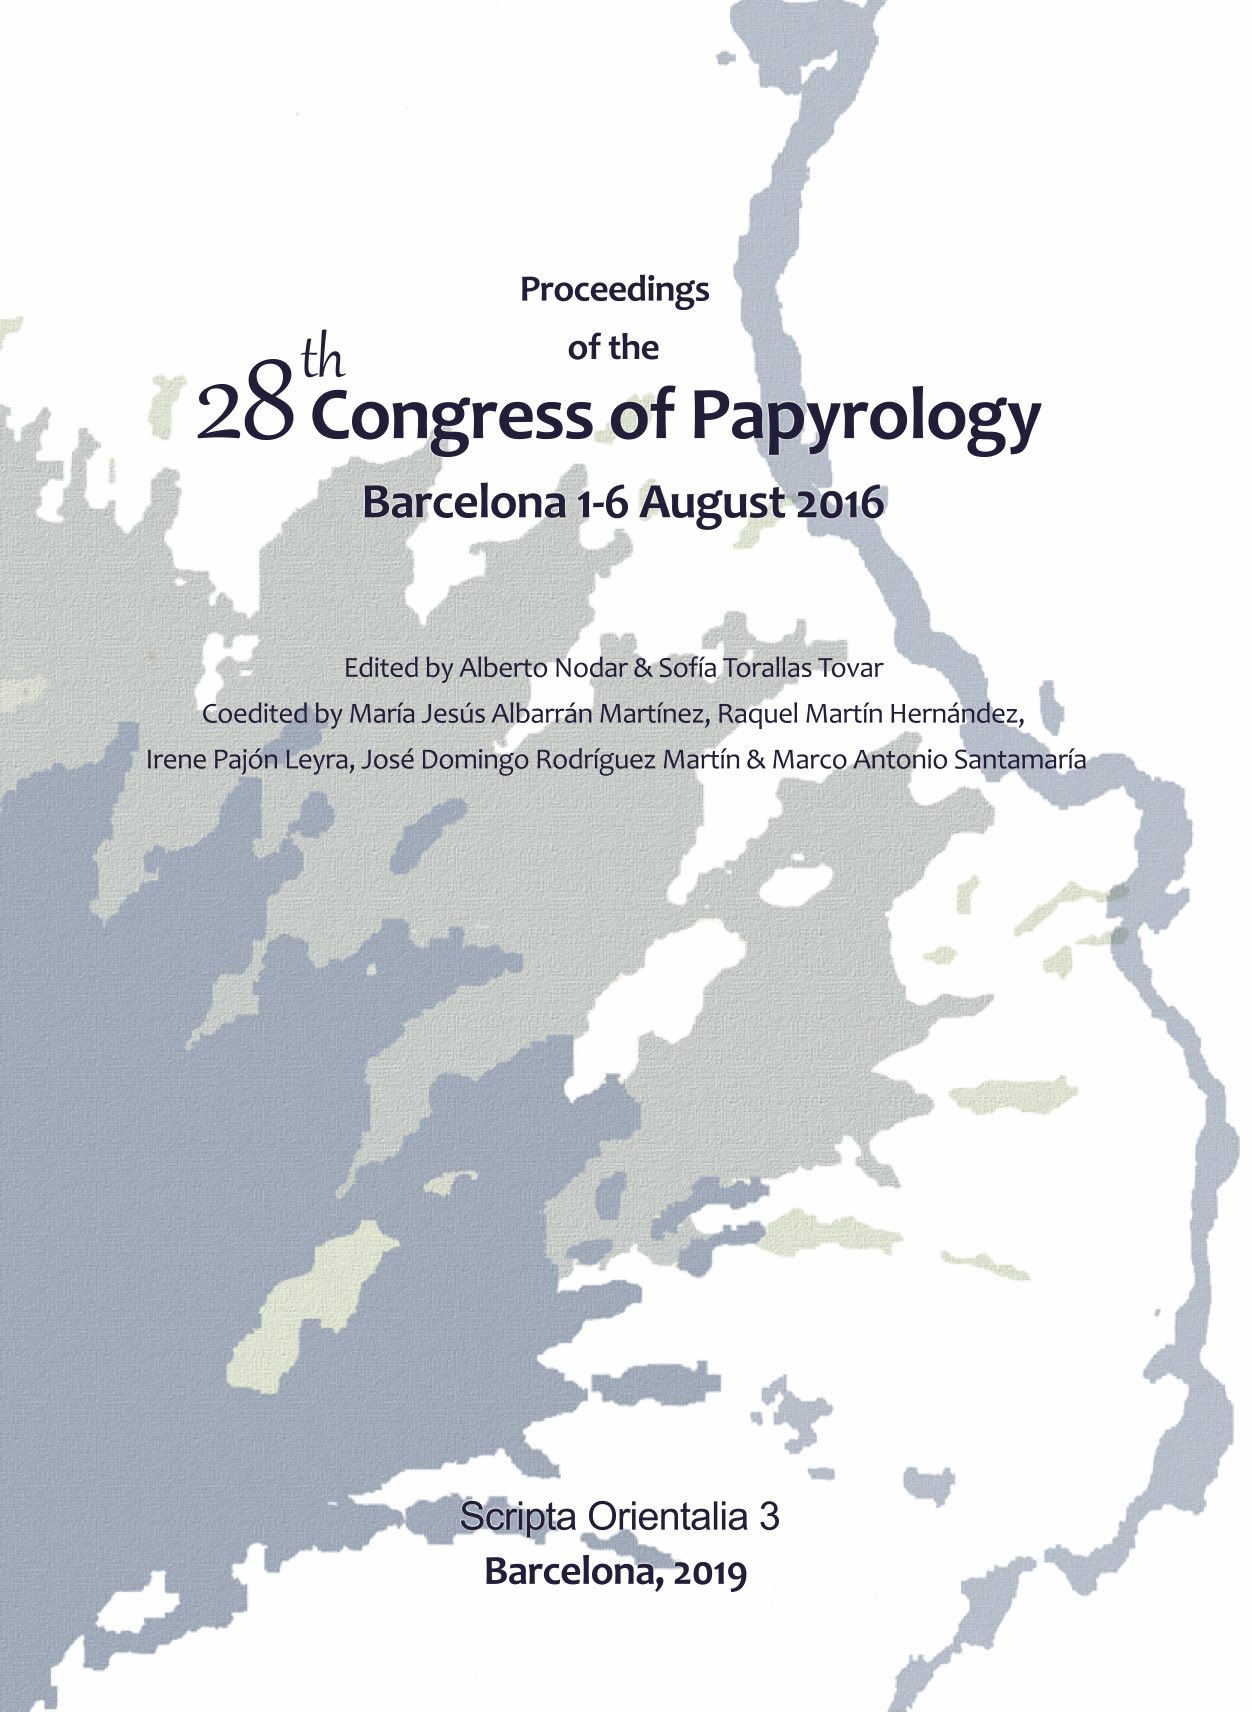 Proceedings of the 28th Congress of Papyrology